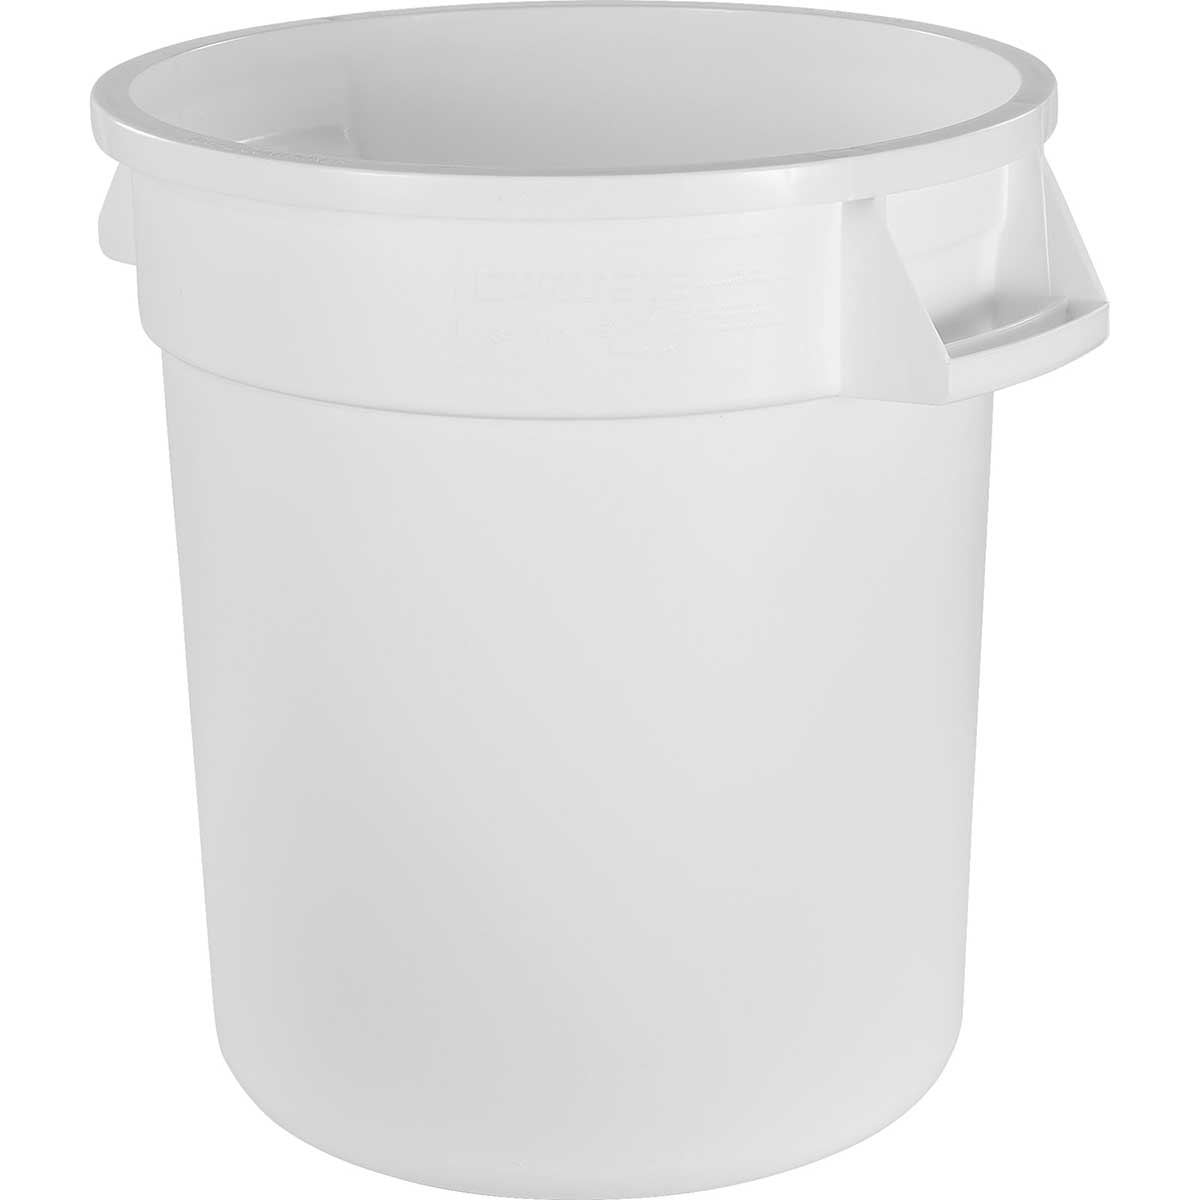 "10-Gallon Bronco Round ""Ice Melt"" Trash Can, Pack of 6"